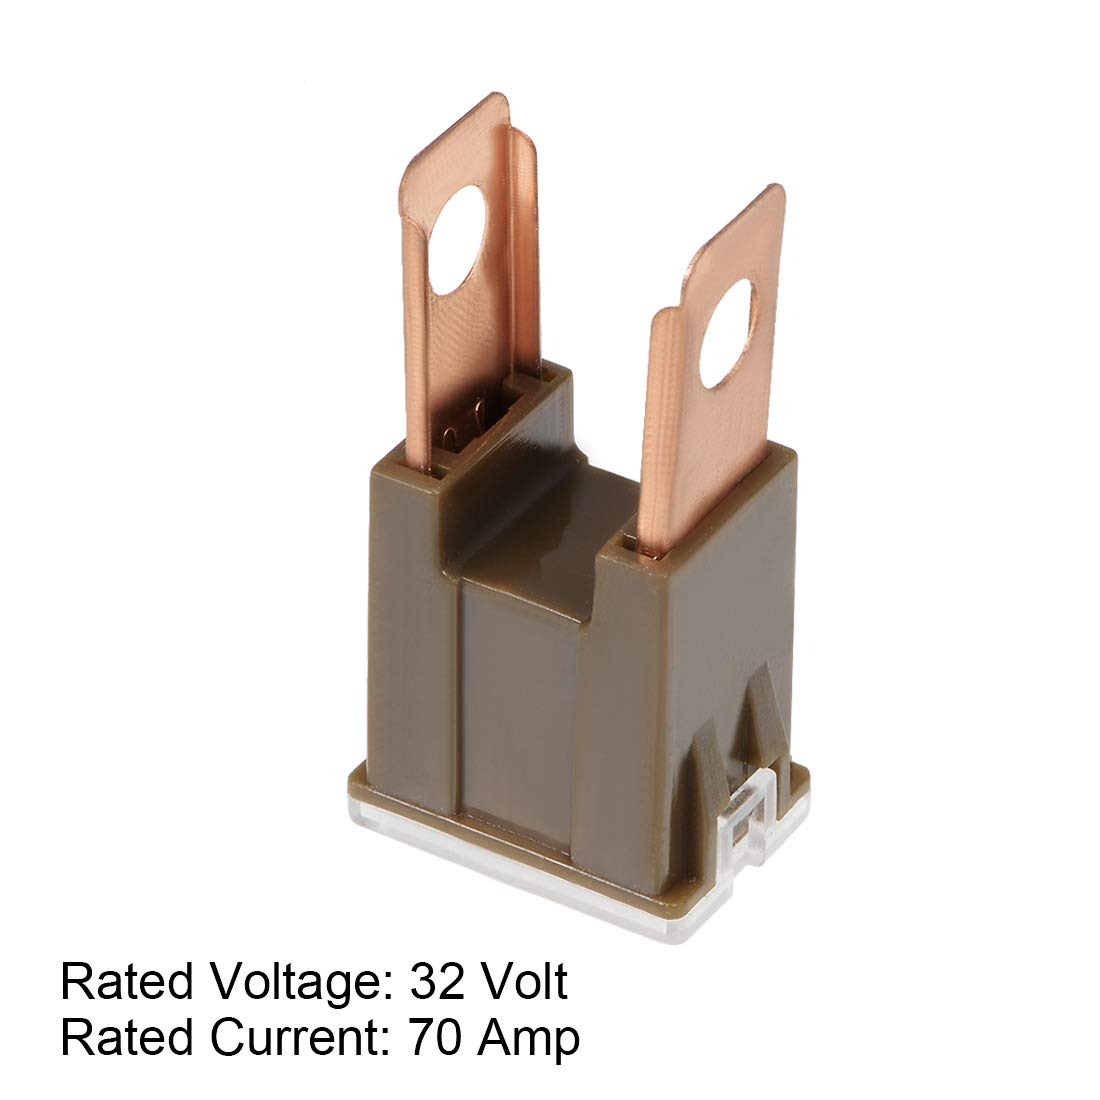 uxcell Automotive Cartridge Fuse 32V 70A Male Terminal Blade J Case Box for Car Truck Vehicle 2pcs